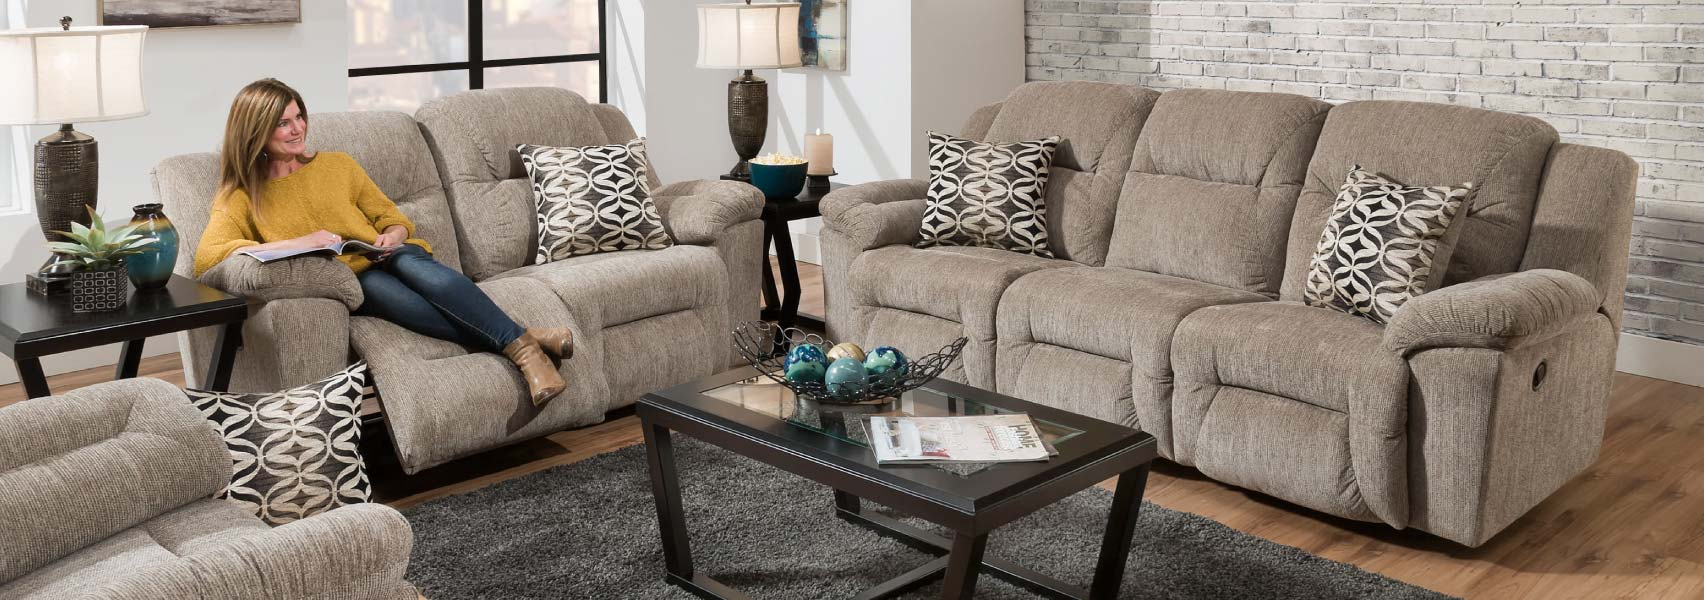 Comfortable traditional style reclining sofa and loveseat in taupe